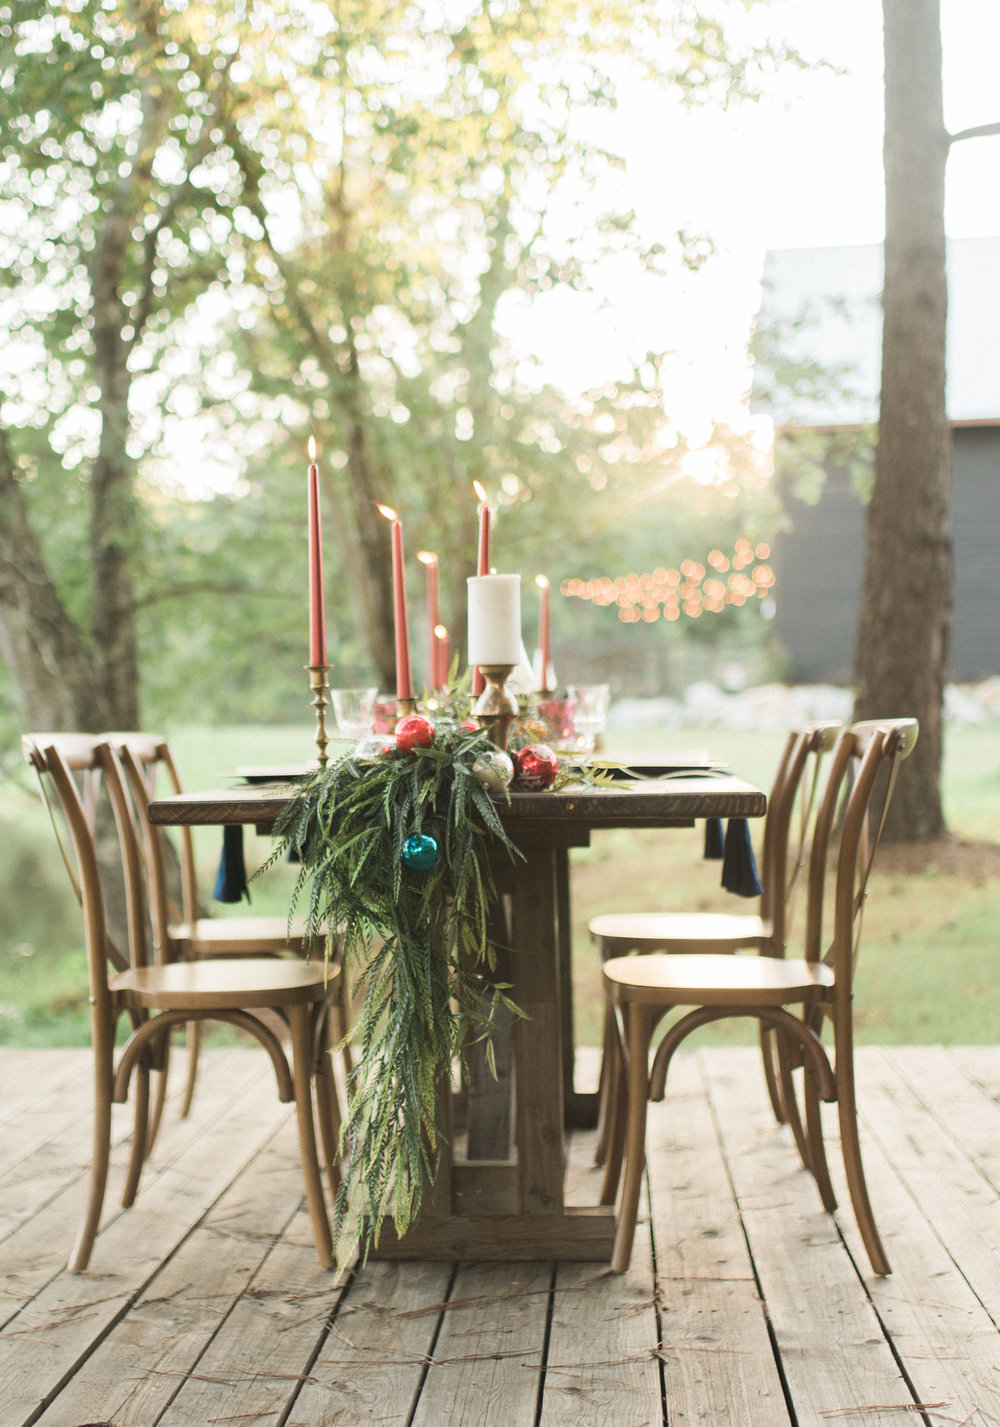 EditorialFeatures - Who doesn't love it when their hard work pays off?!? I hope you find inspiration from these beautiful styled shoots that have been featured in some top magazines and blogs!